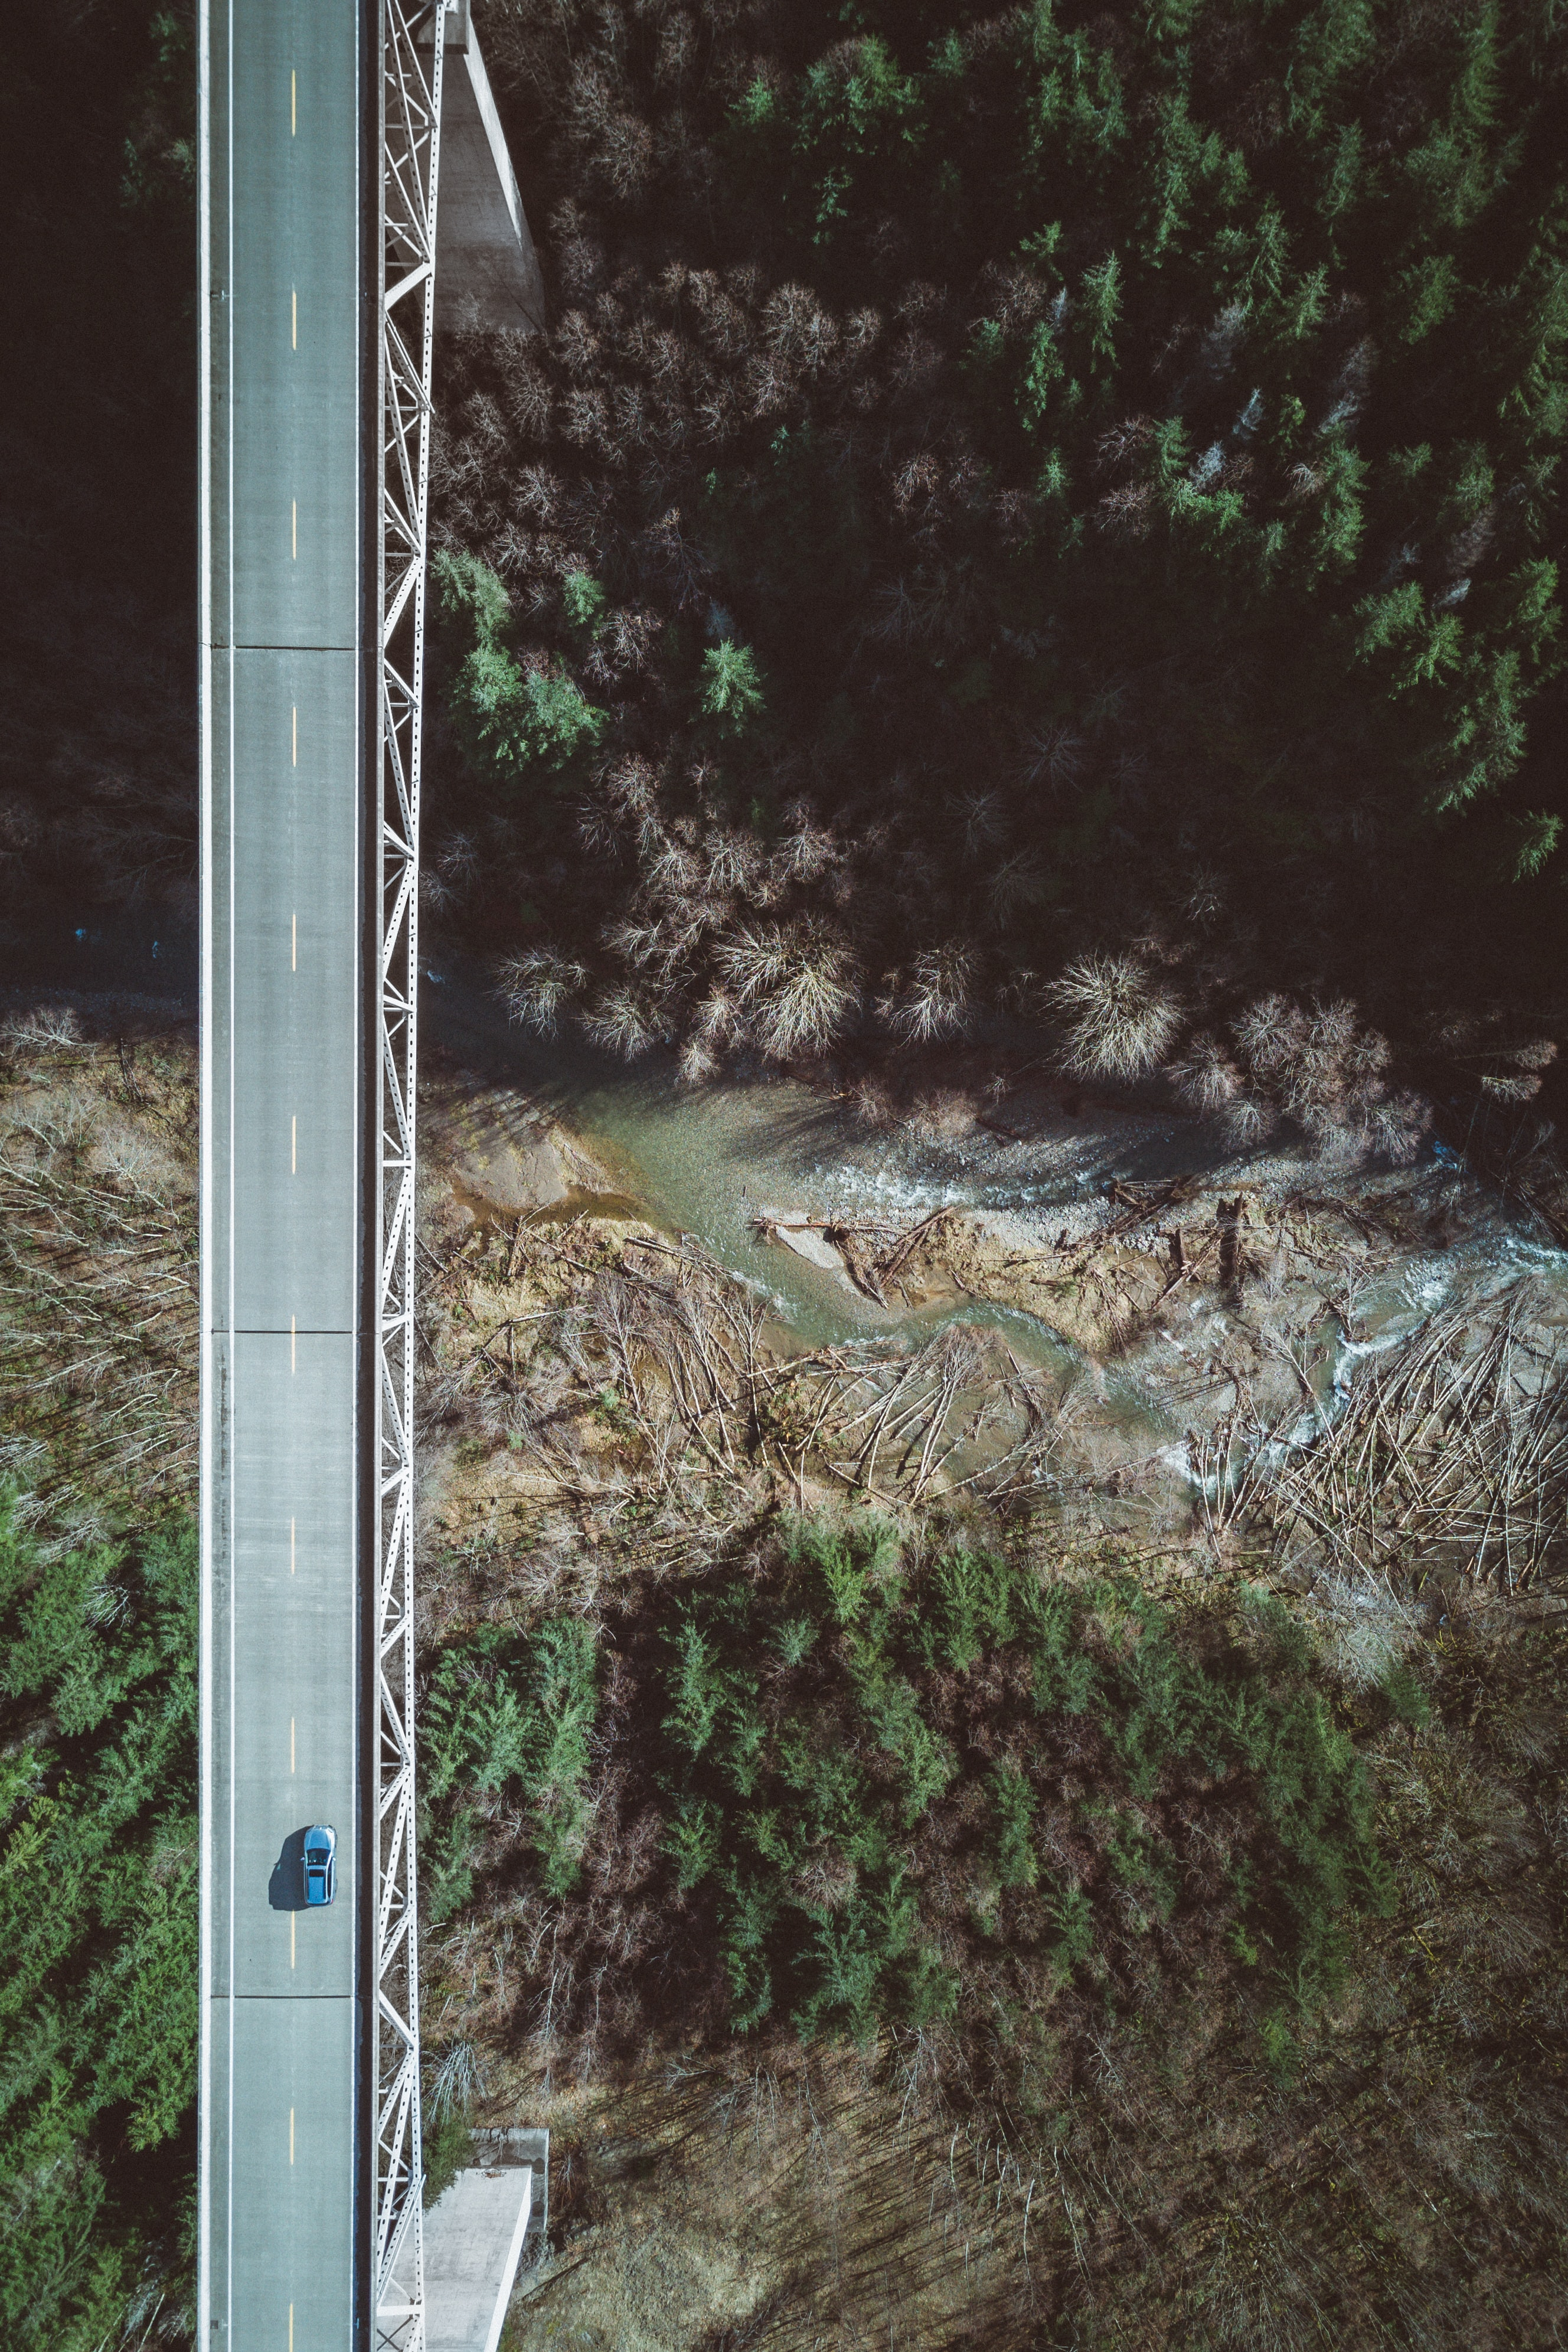 A drone shot of a car on a bridge over a deep ravine with a river